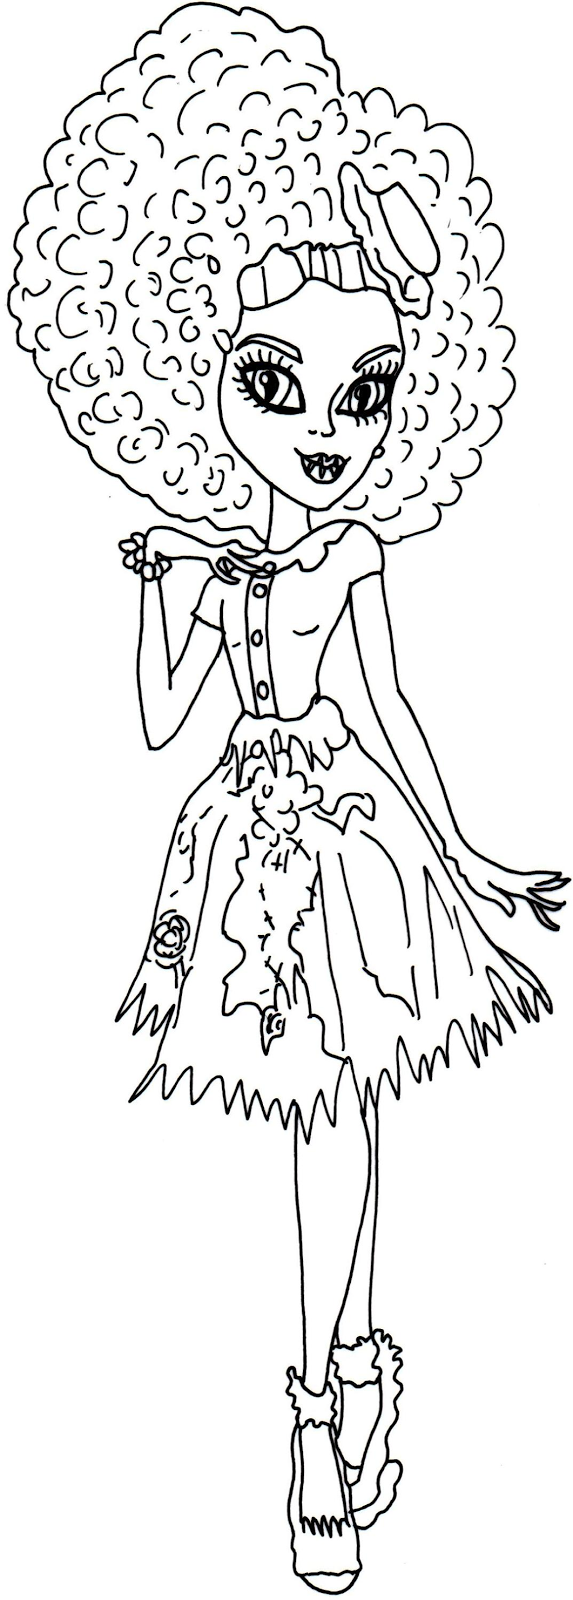 free printable ever after high coloring pages holly o u0027hair ever